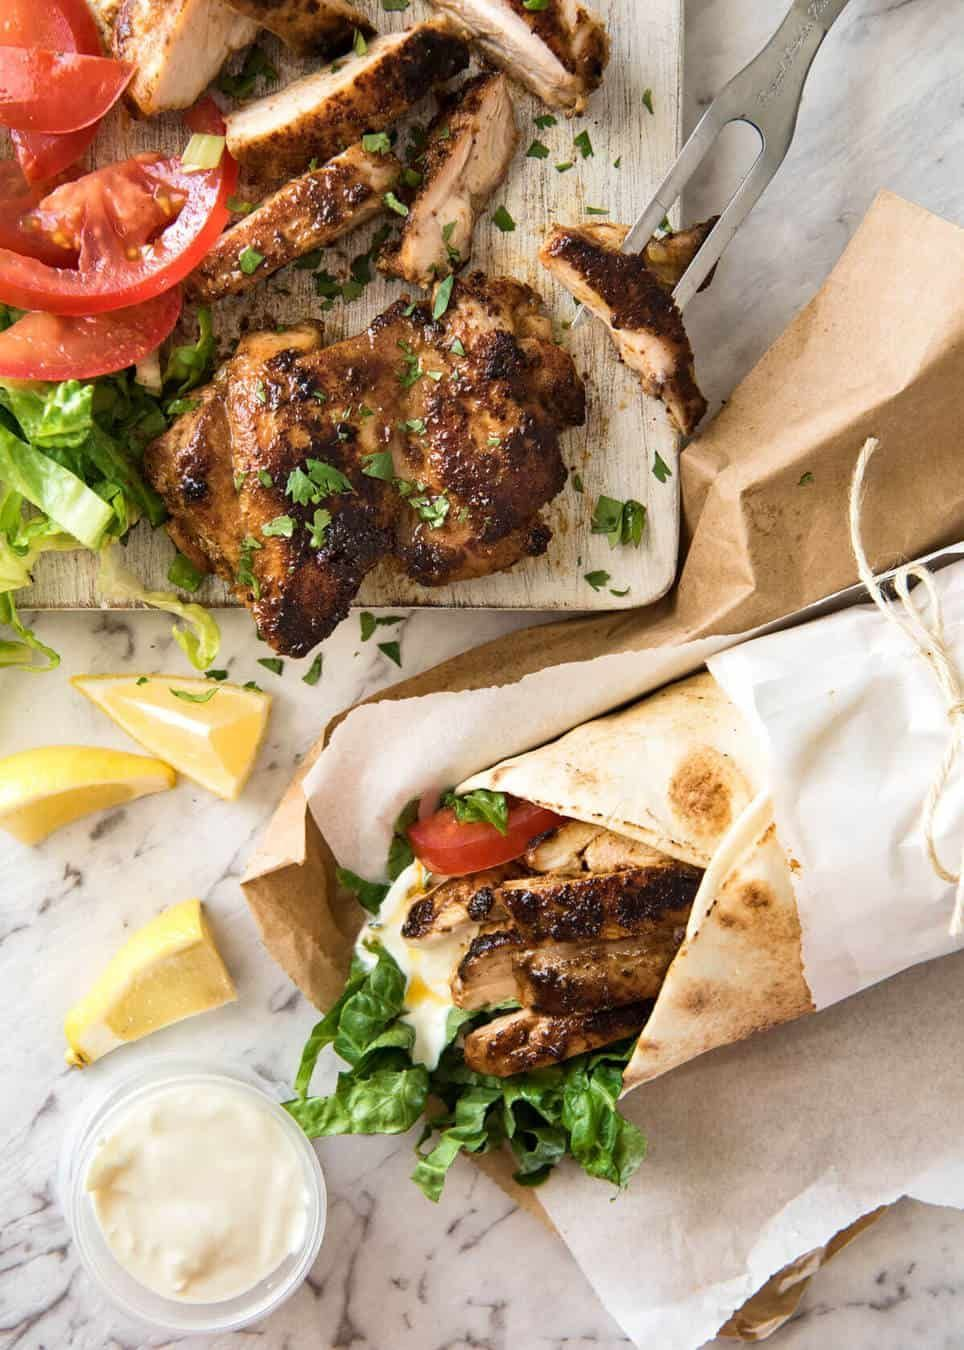 Chicken Shawarma (Middle Eastern) #middleeast The flavour of this Chicken Shawarma marinade is absolutely incredible, yet made with just a handful of everyday spices. www.recipetineats.com #middleeast